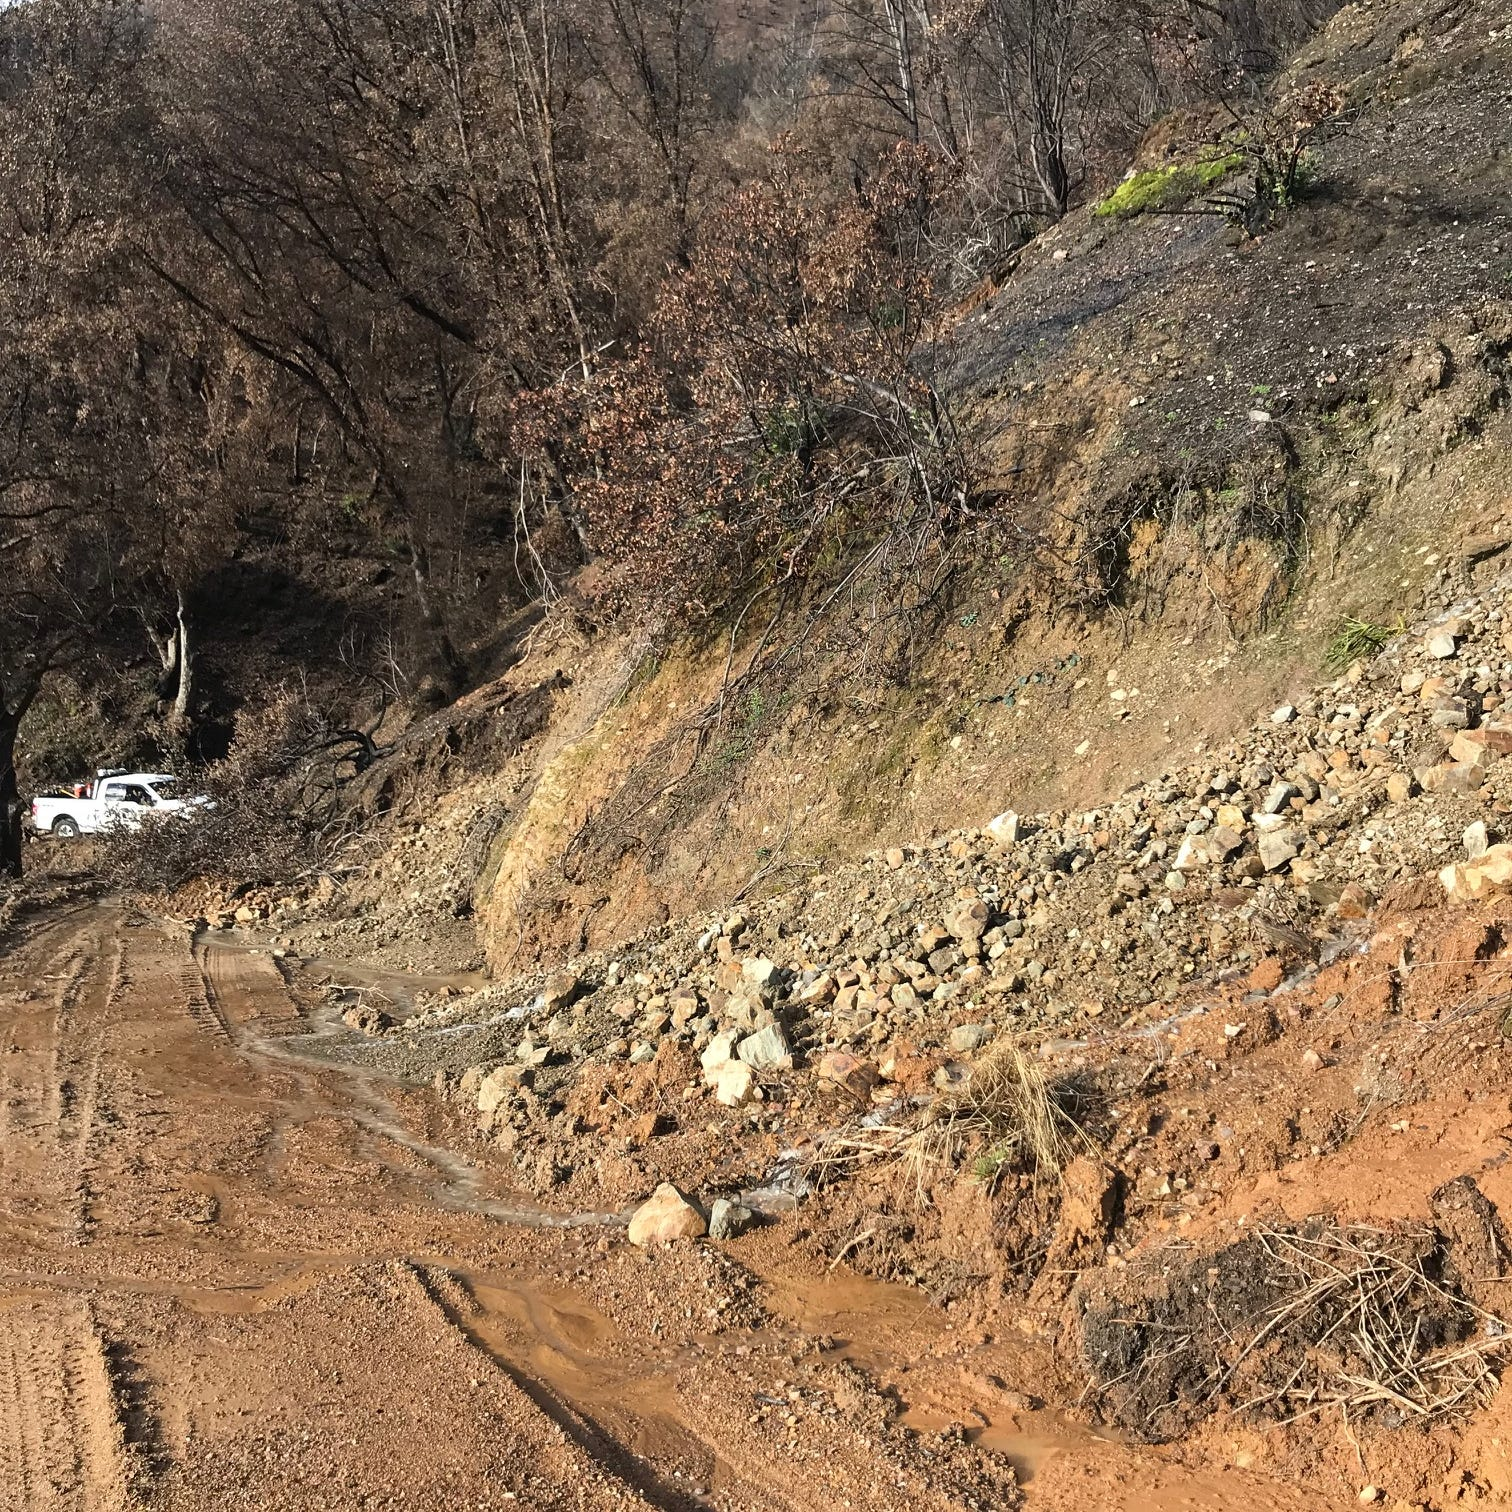 Mudslide causes road closure near French Gulch